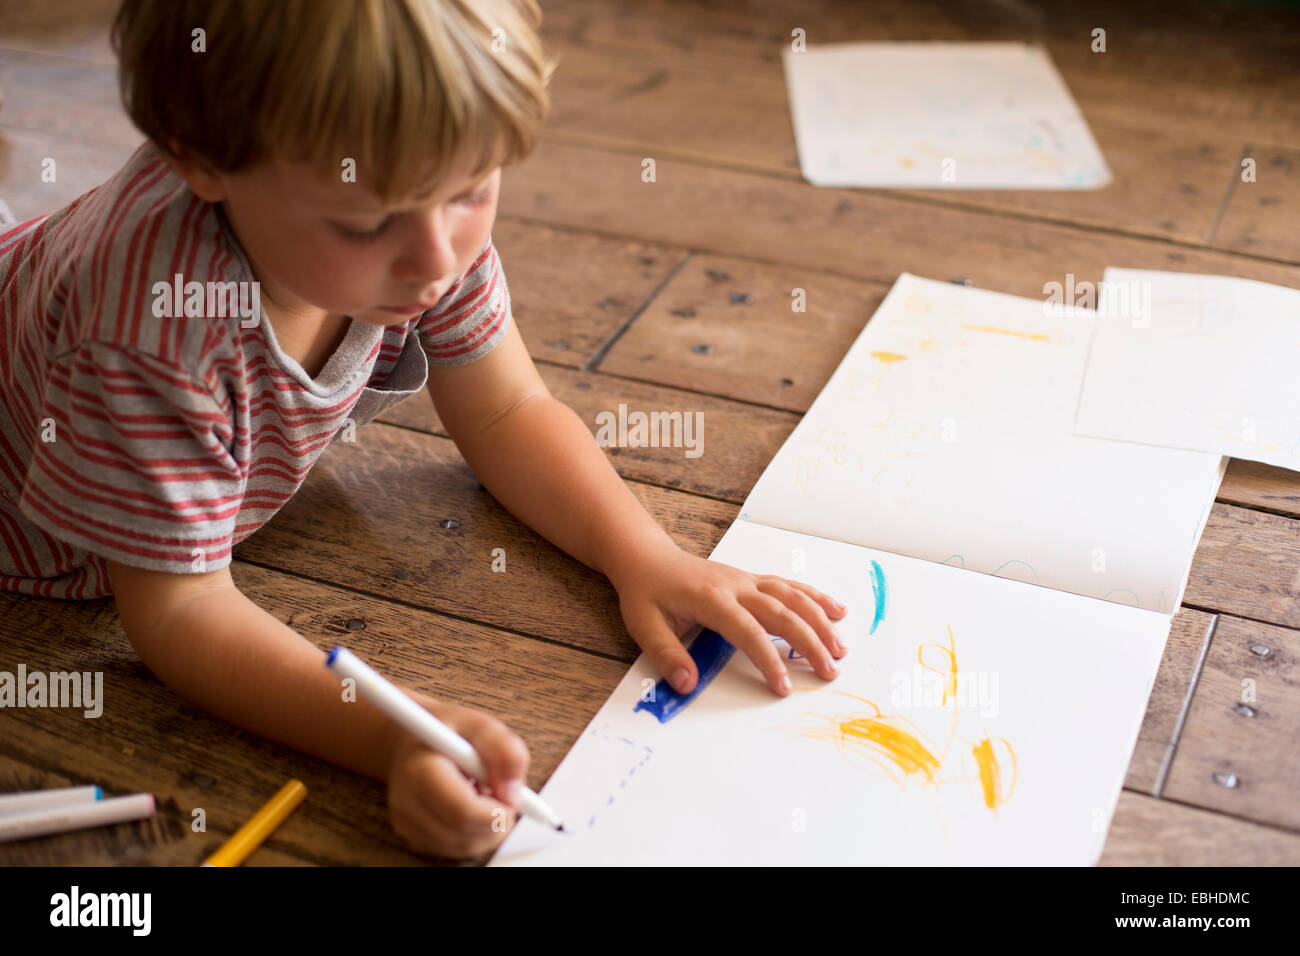 Young boy drawing on paper - Stock Image